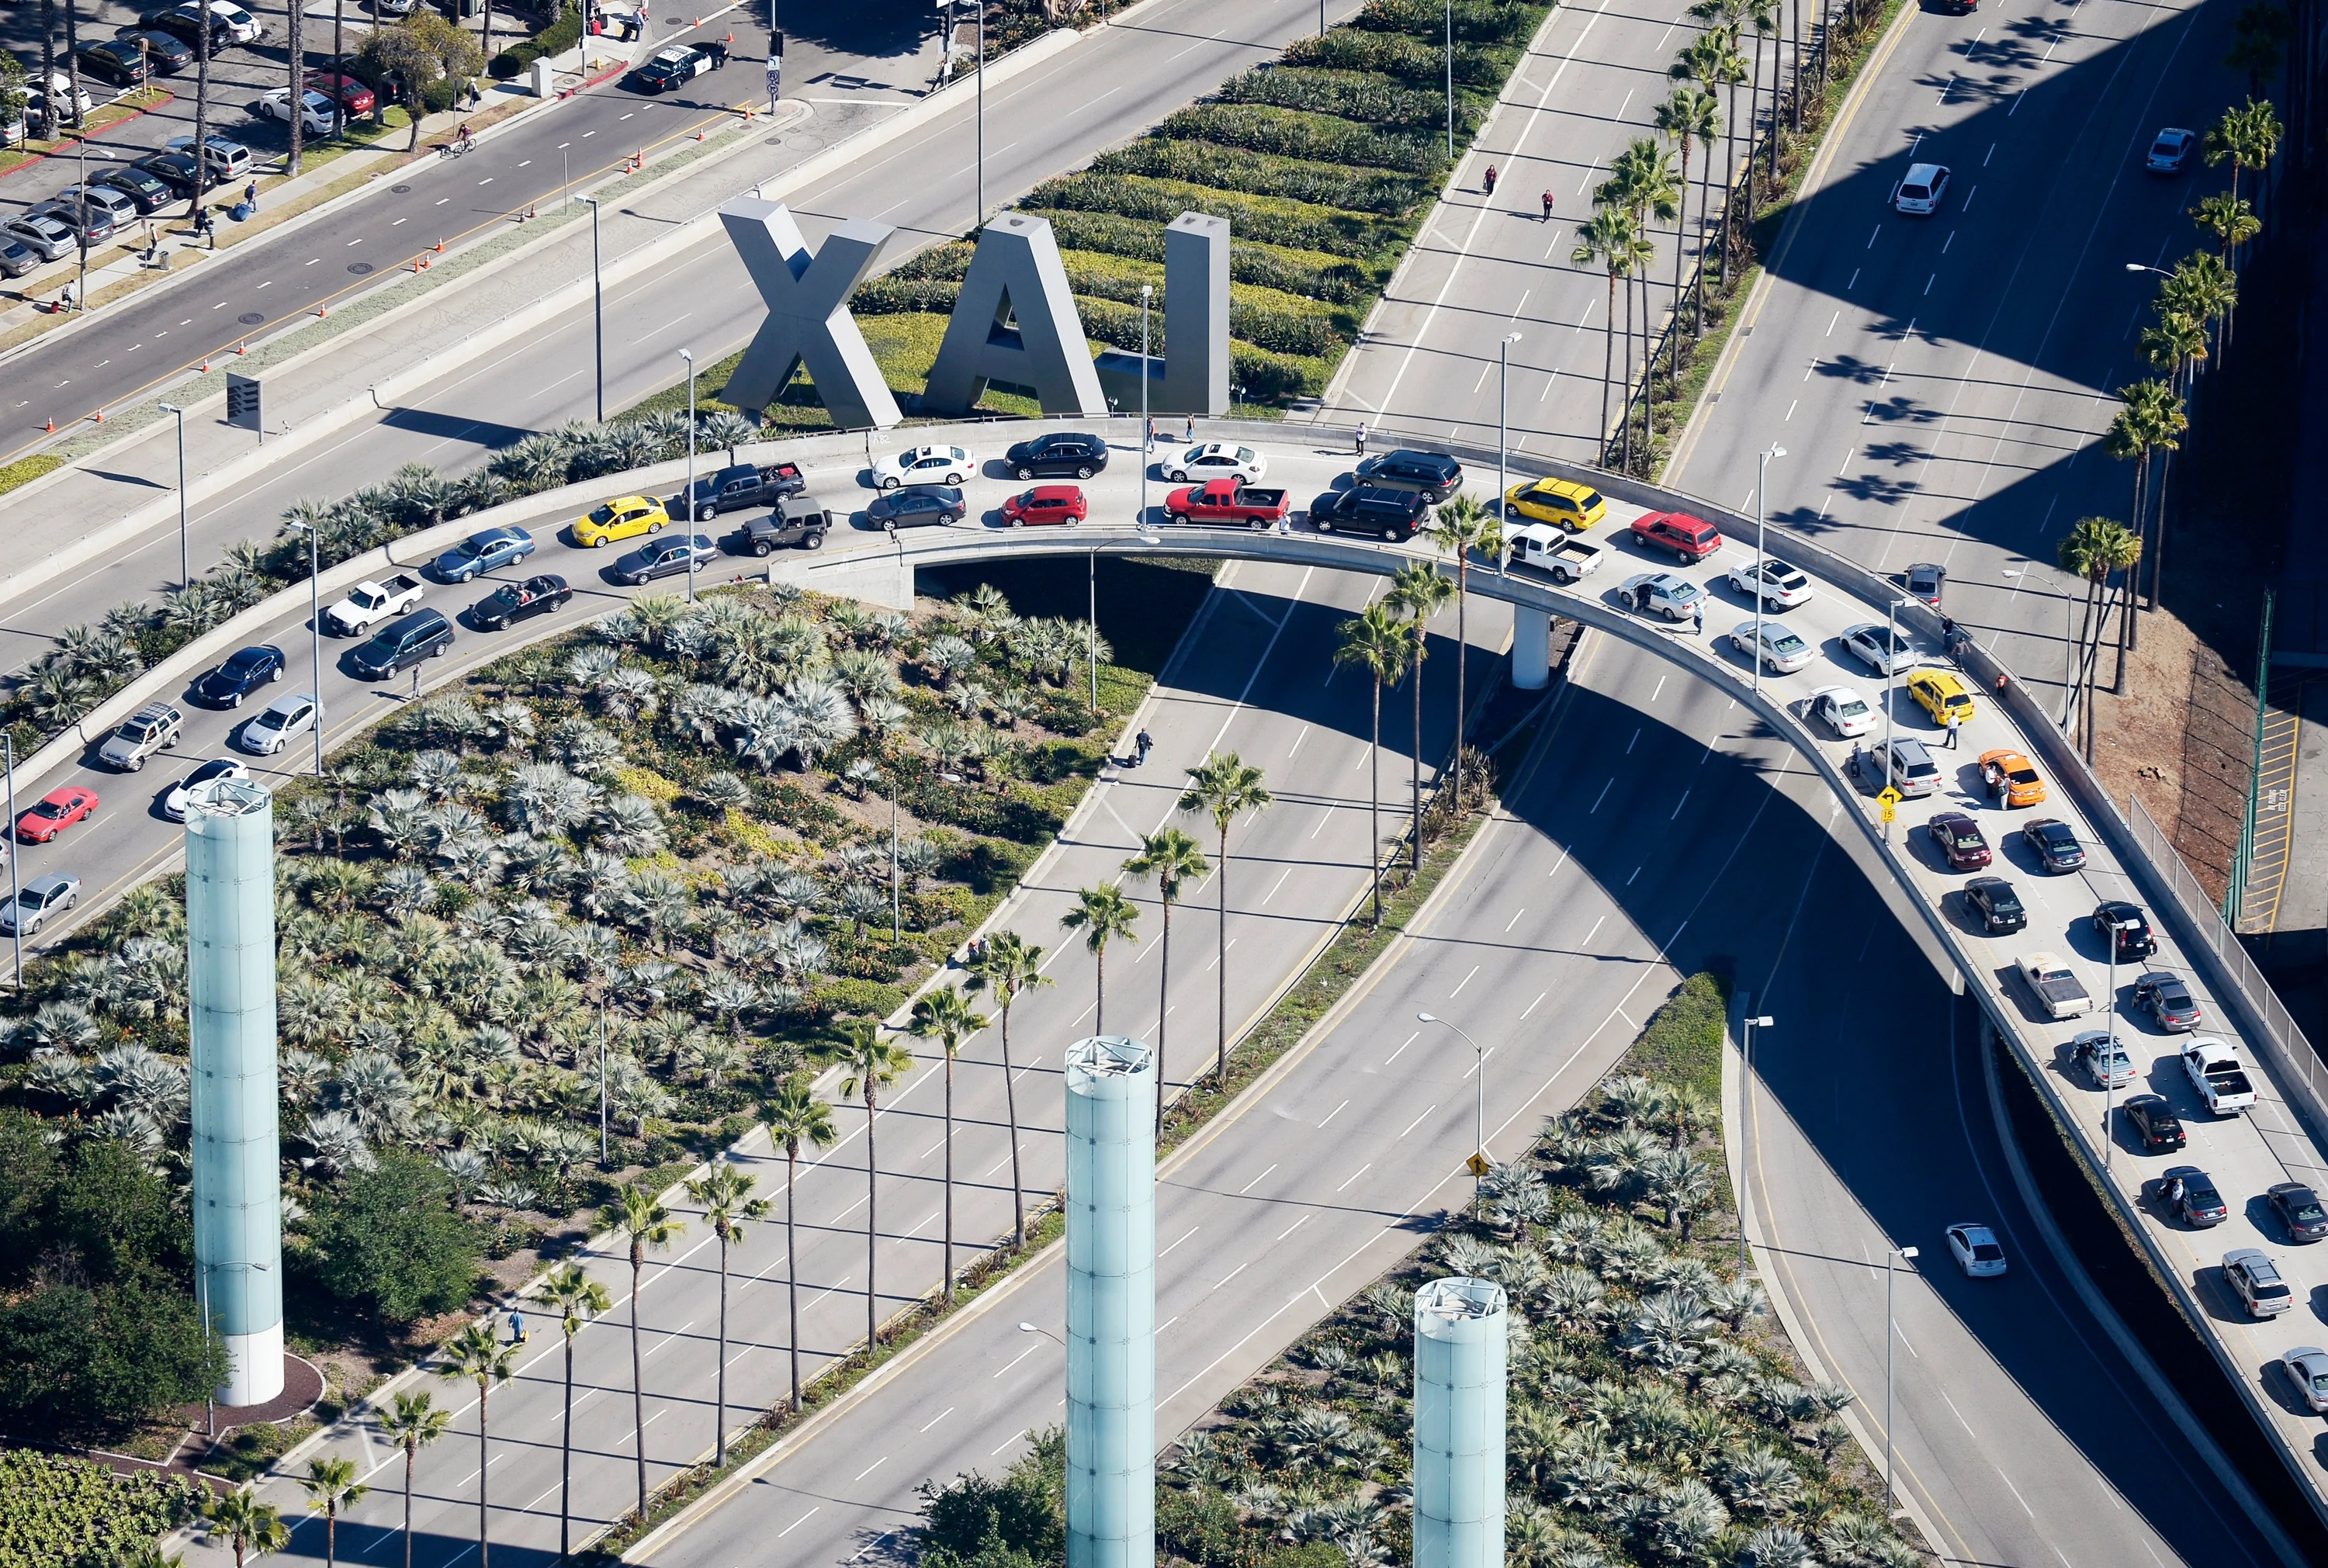 We checked out LAX's new ride-hailing lot — and things are improving